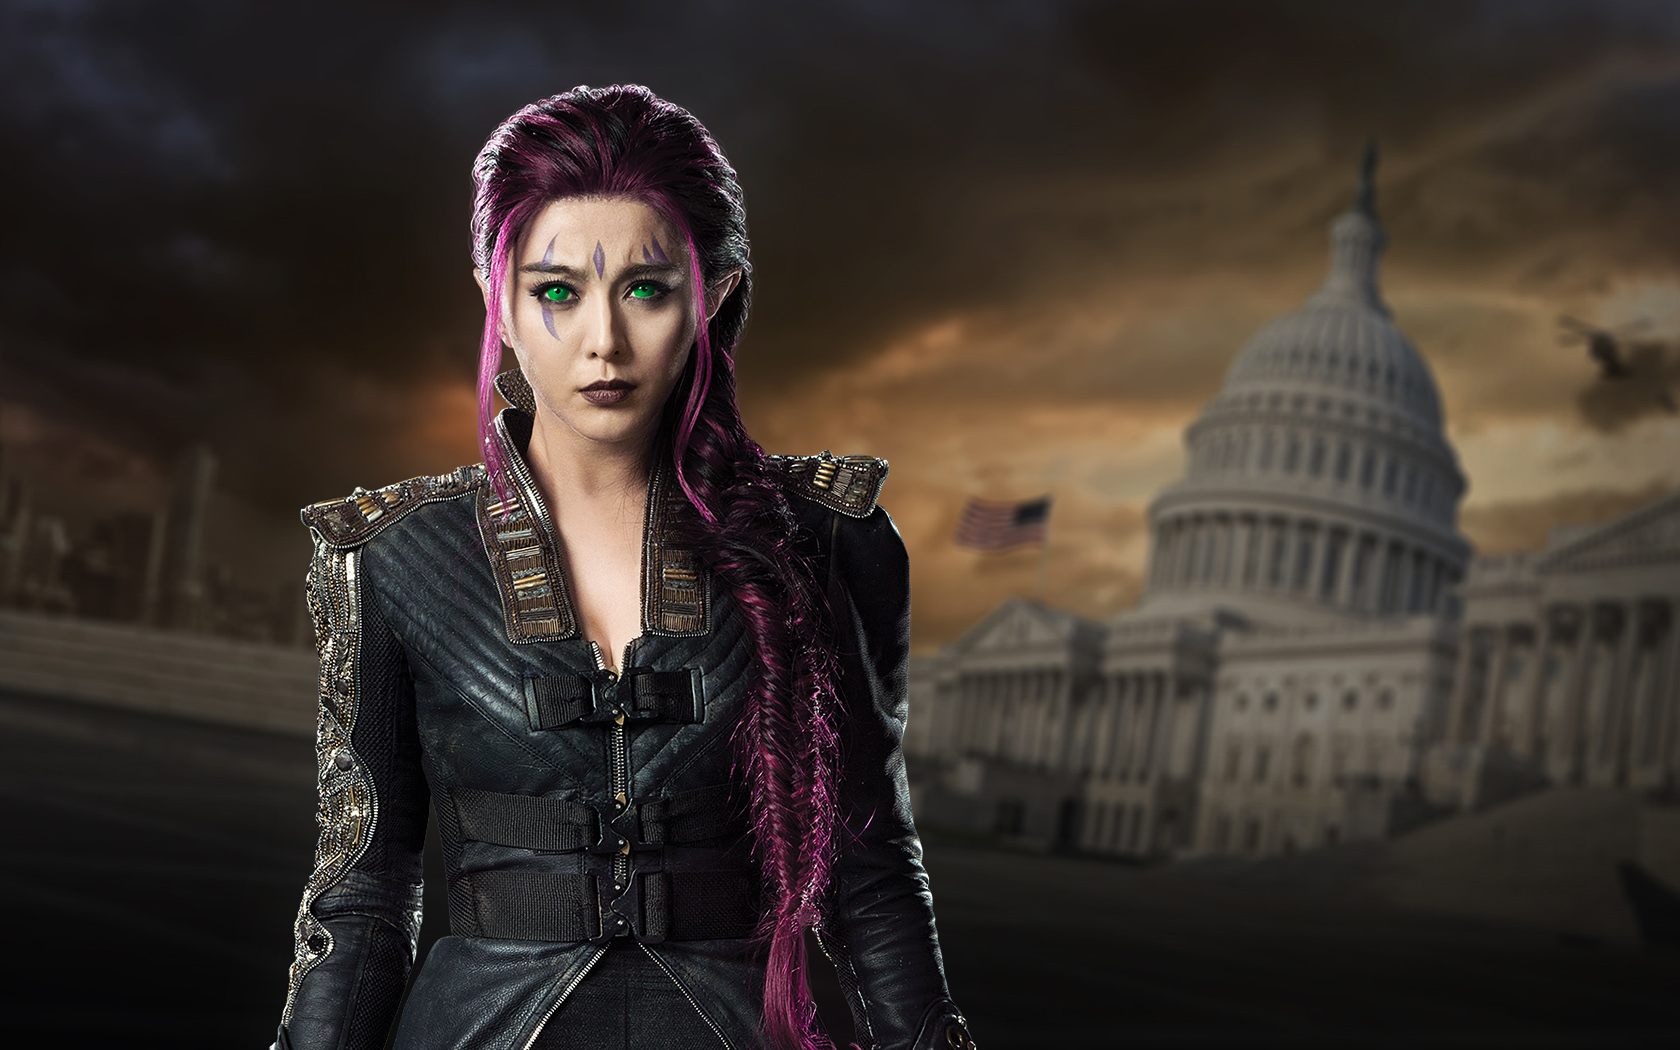 X Men Days Of Future Past Character Wallpapers 10